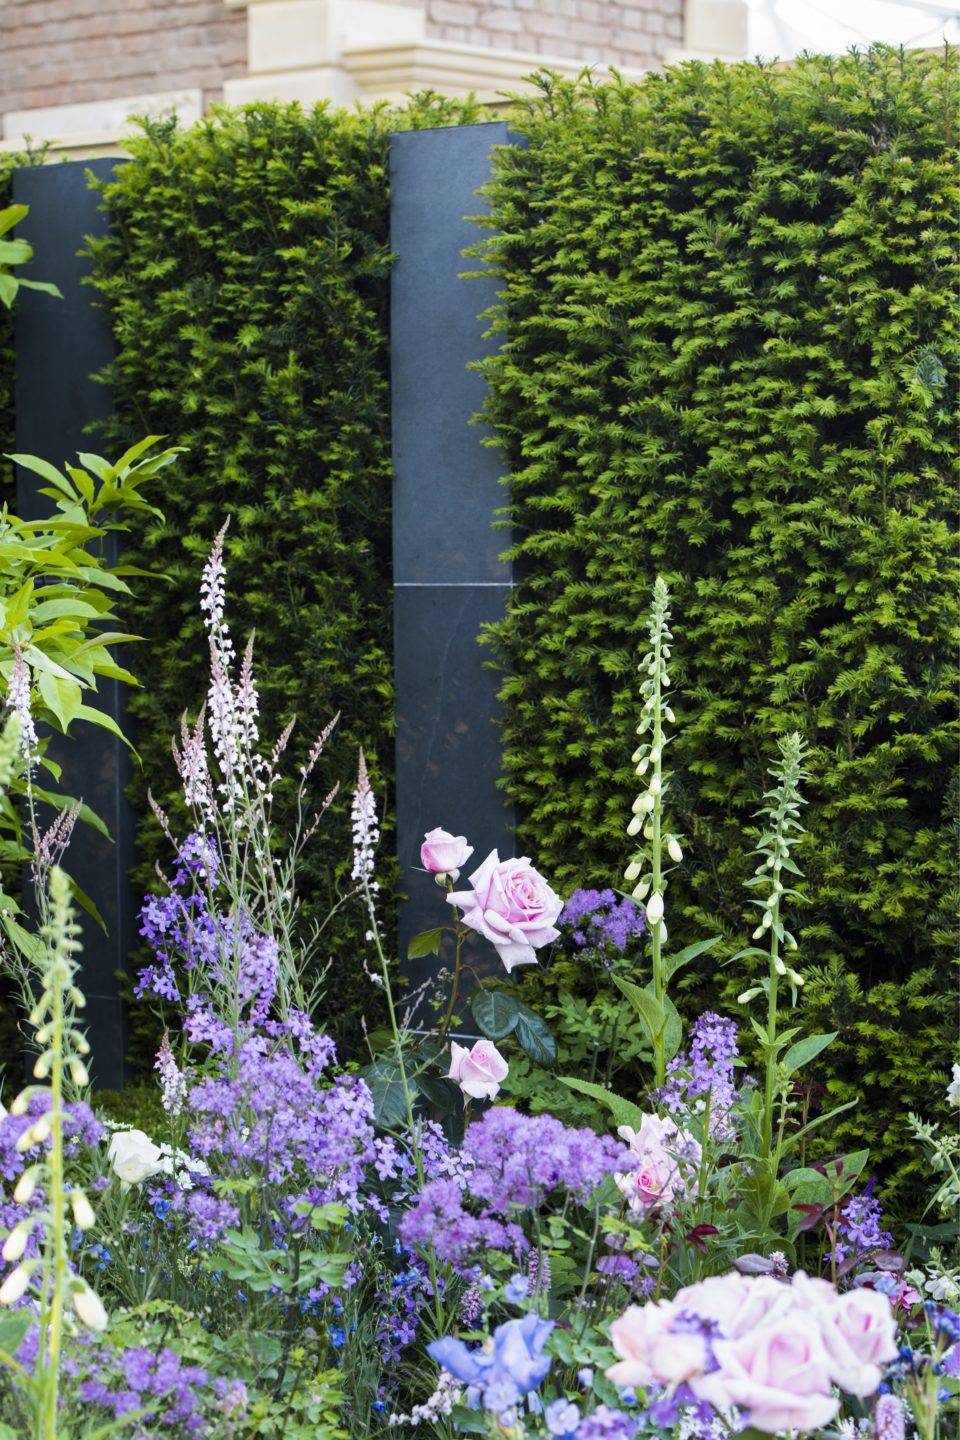 Taxus modern commercial courtyard soften accents